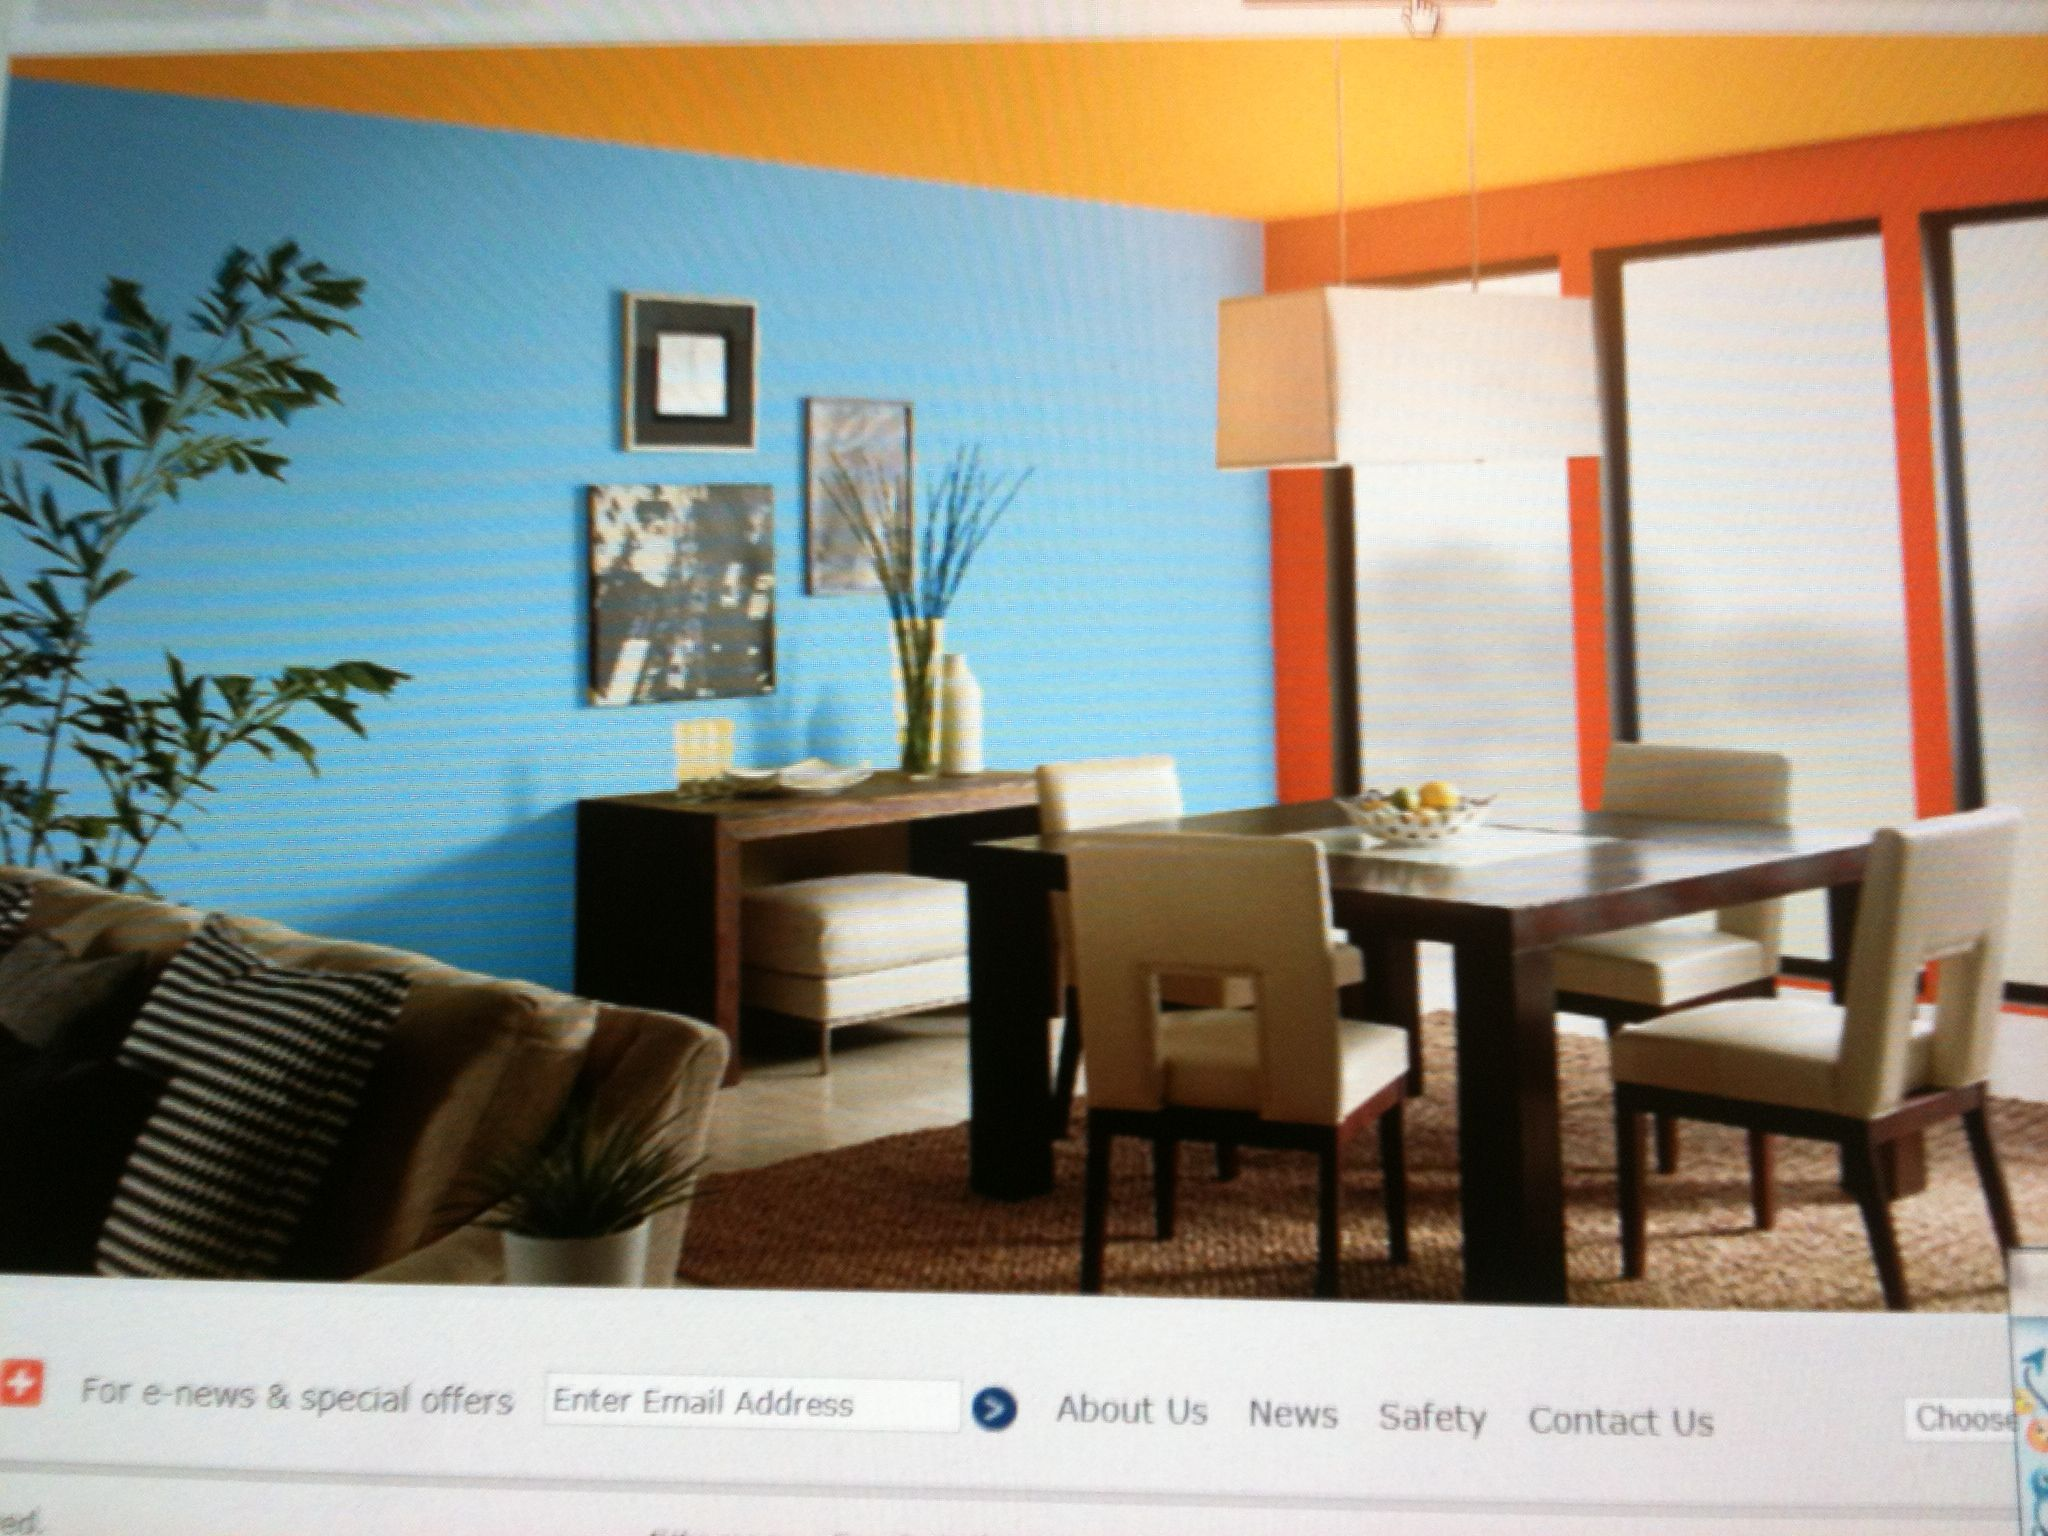 This Split Complementary Room Consists Of Blue Yellow Orange And Red